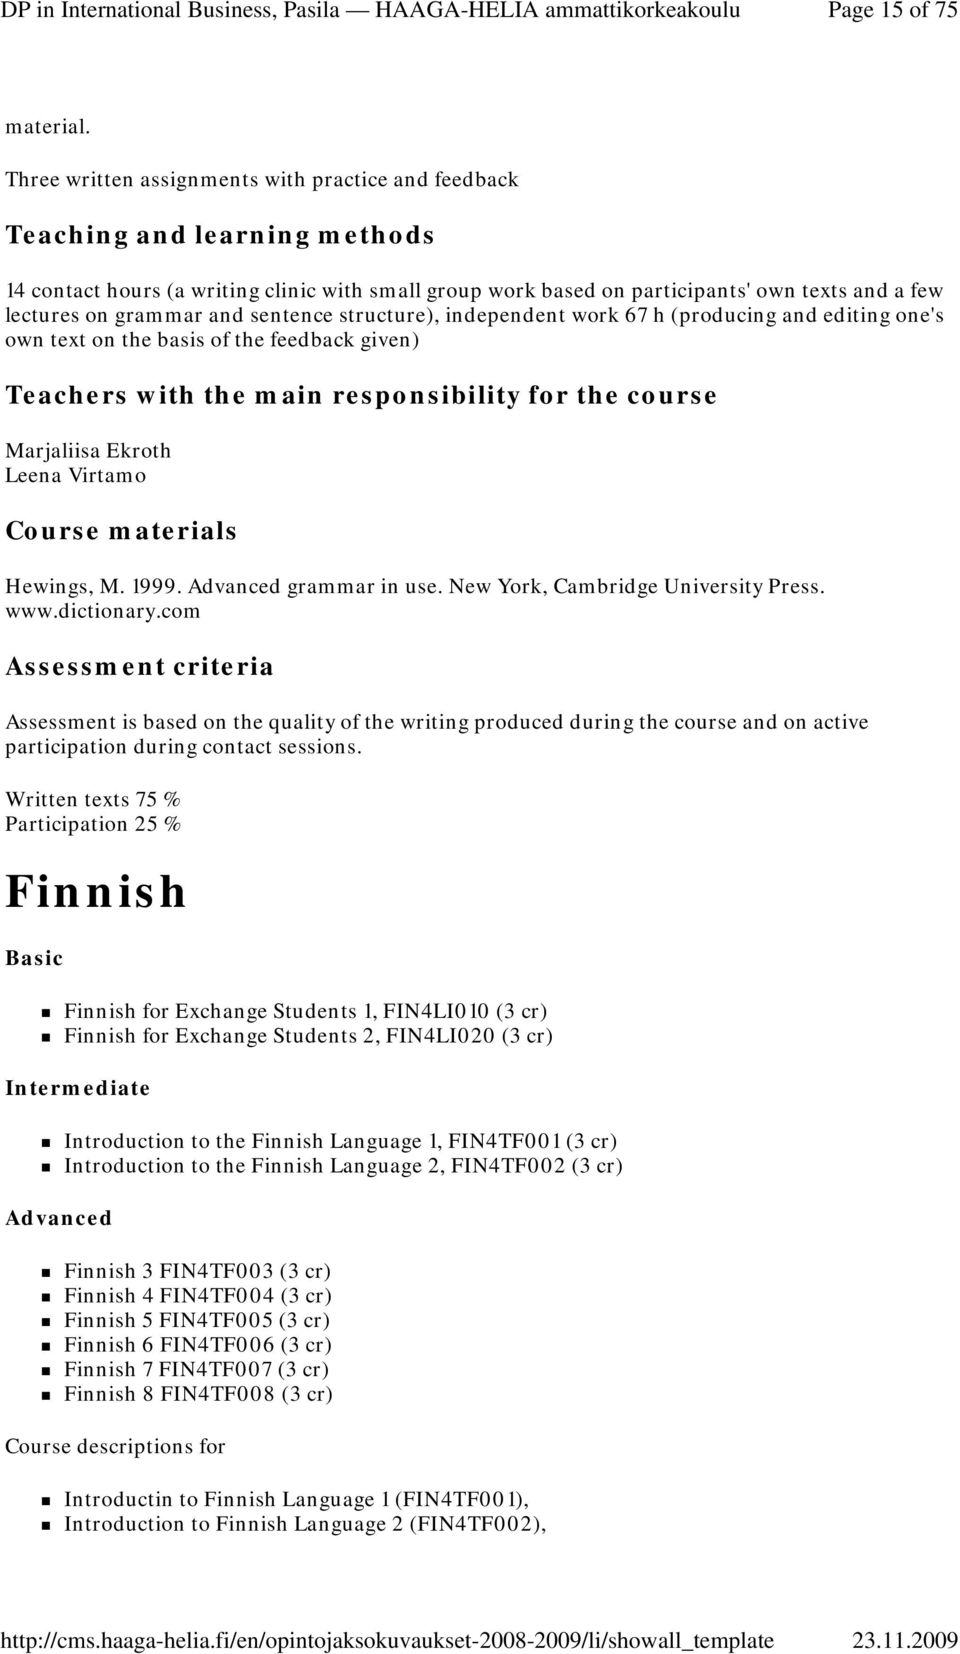 independent work 67 h (producing and editing one's own text on the basis of the feedback given) Teachers with the main responsibility for the course Marjaliisa Ekroth Leena Virtamo Hewings, M. 1999.